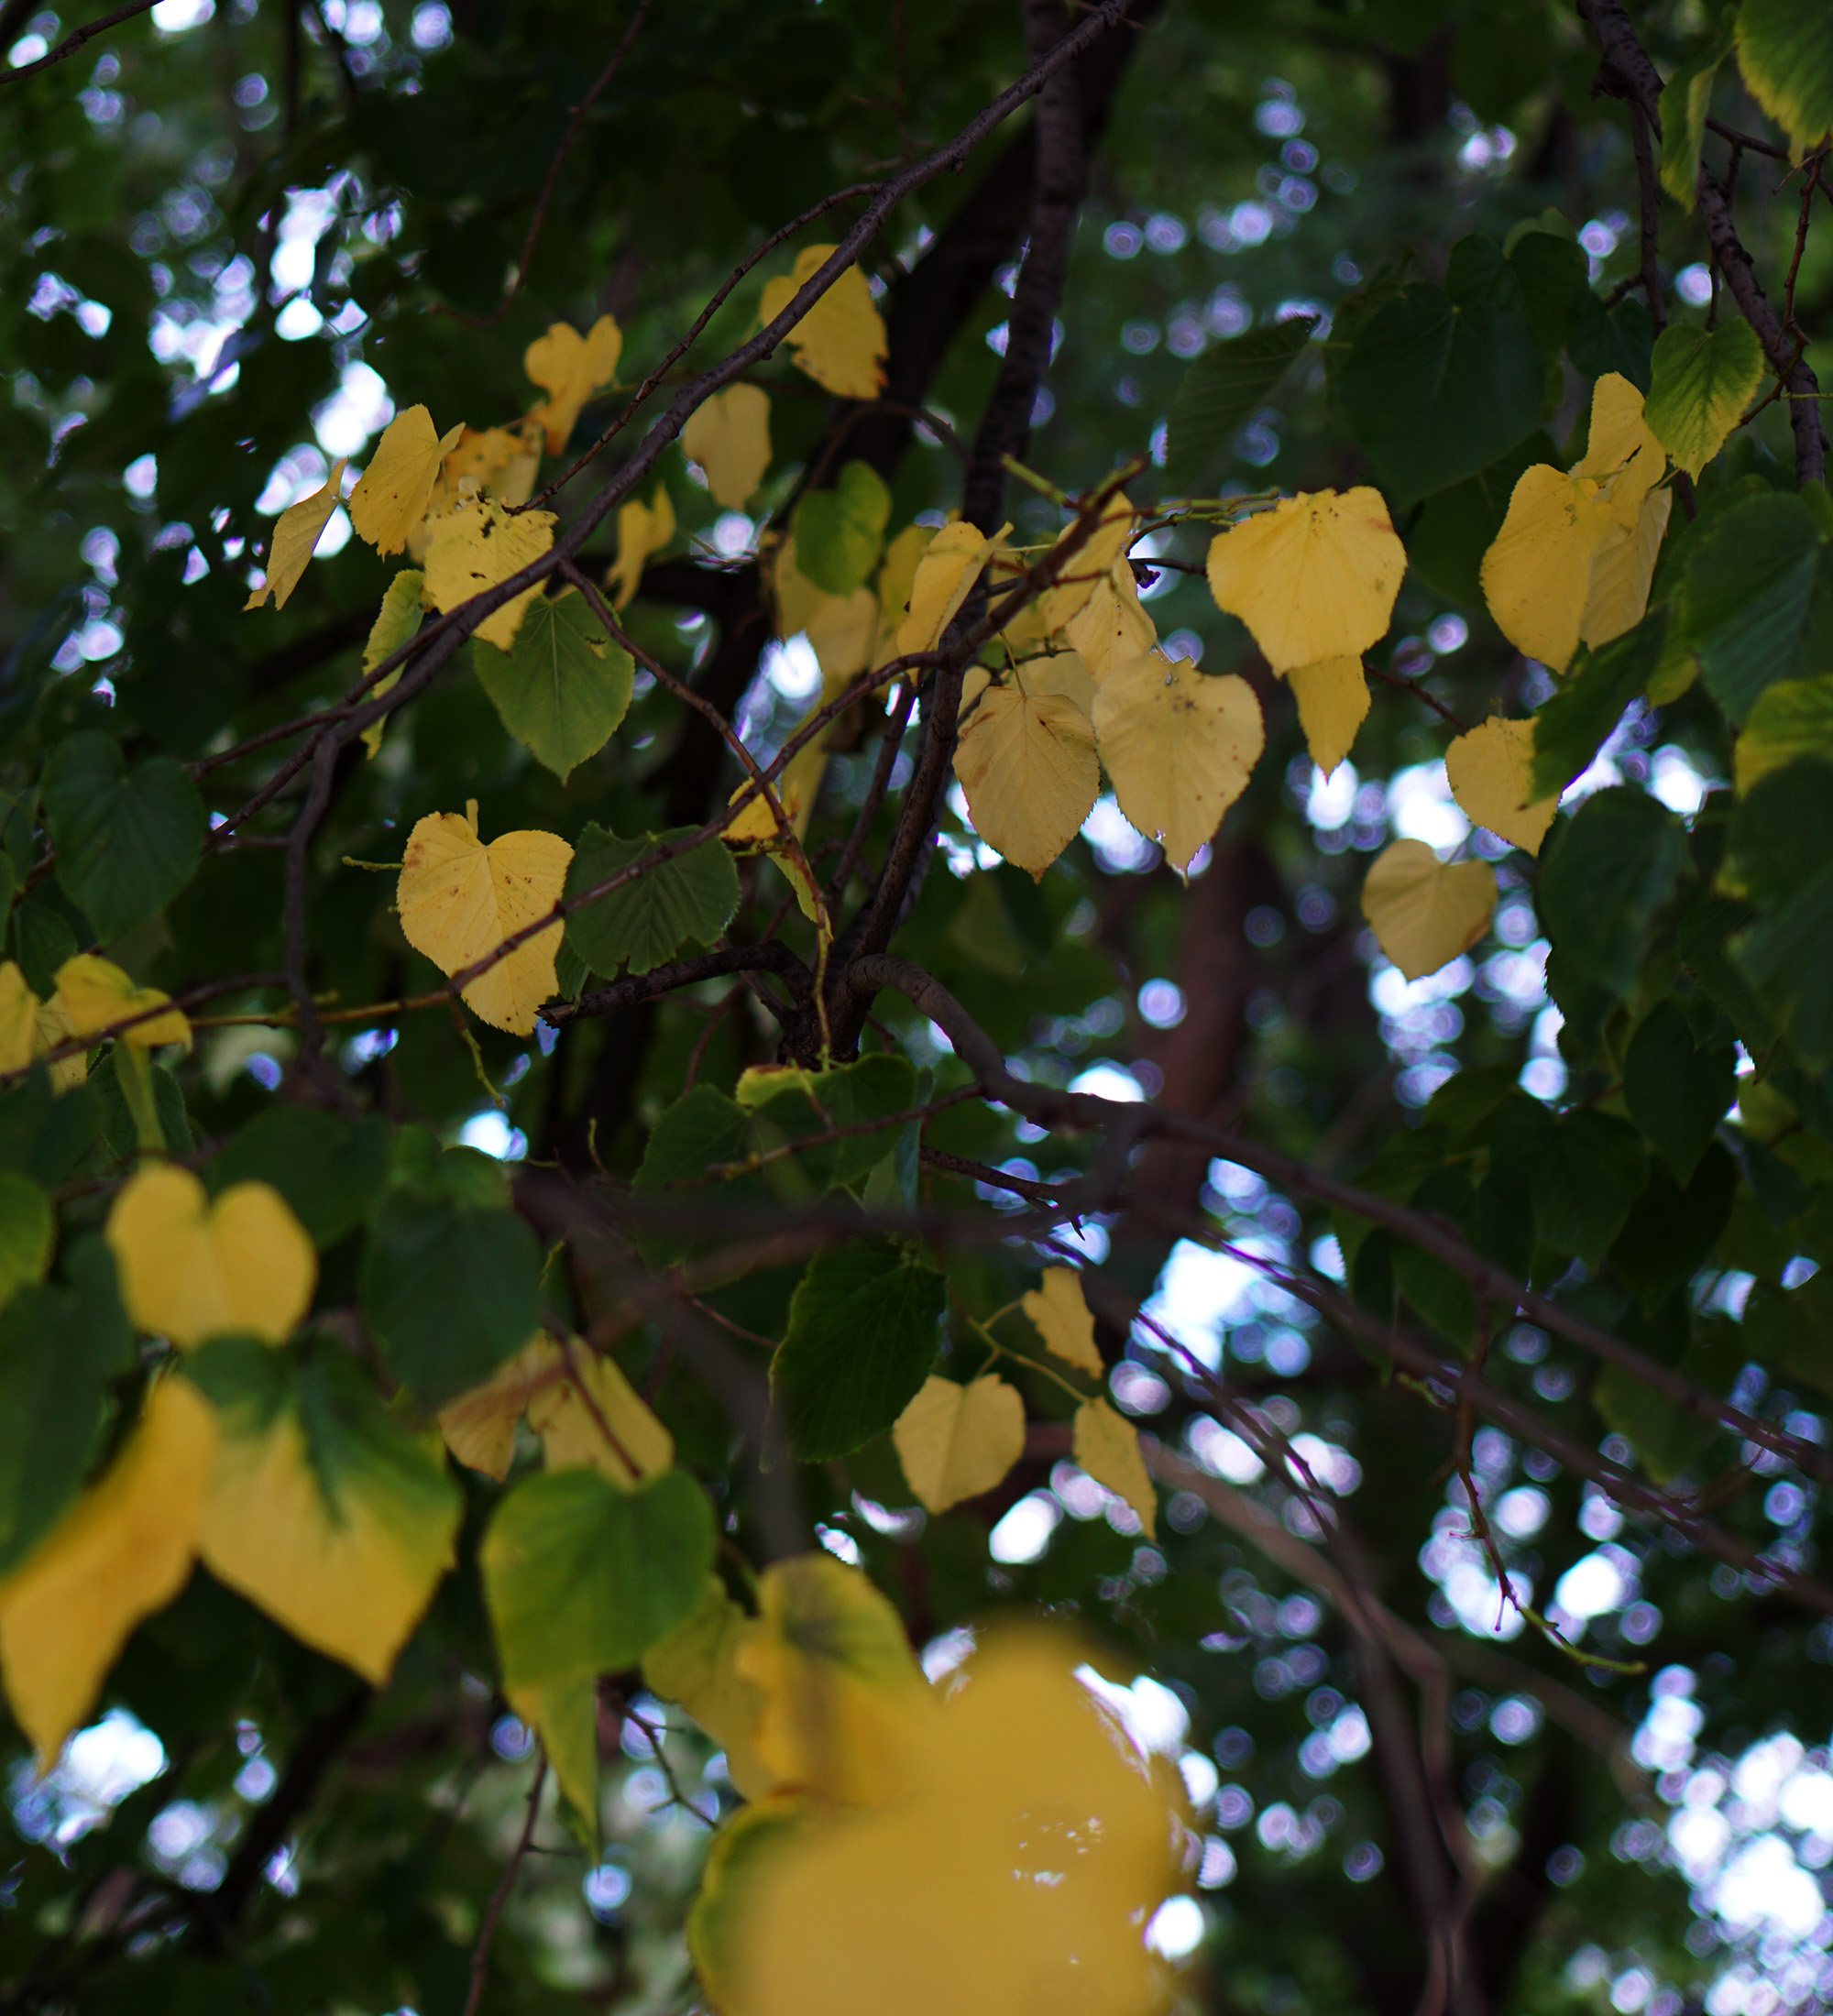 Leaves turning yellow / Darker than Green